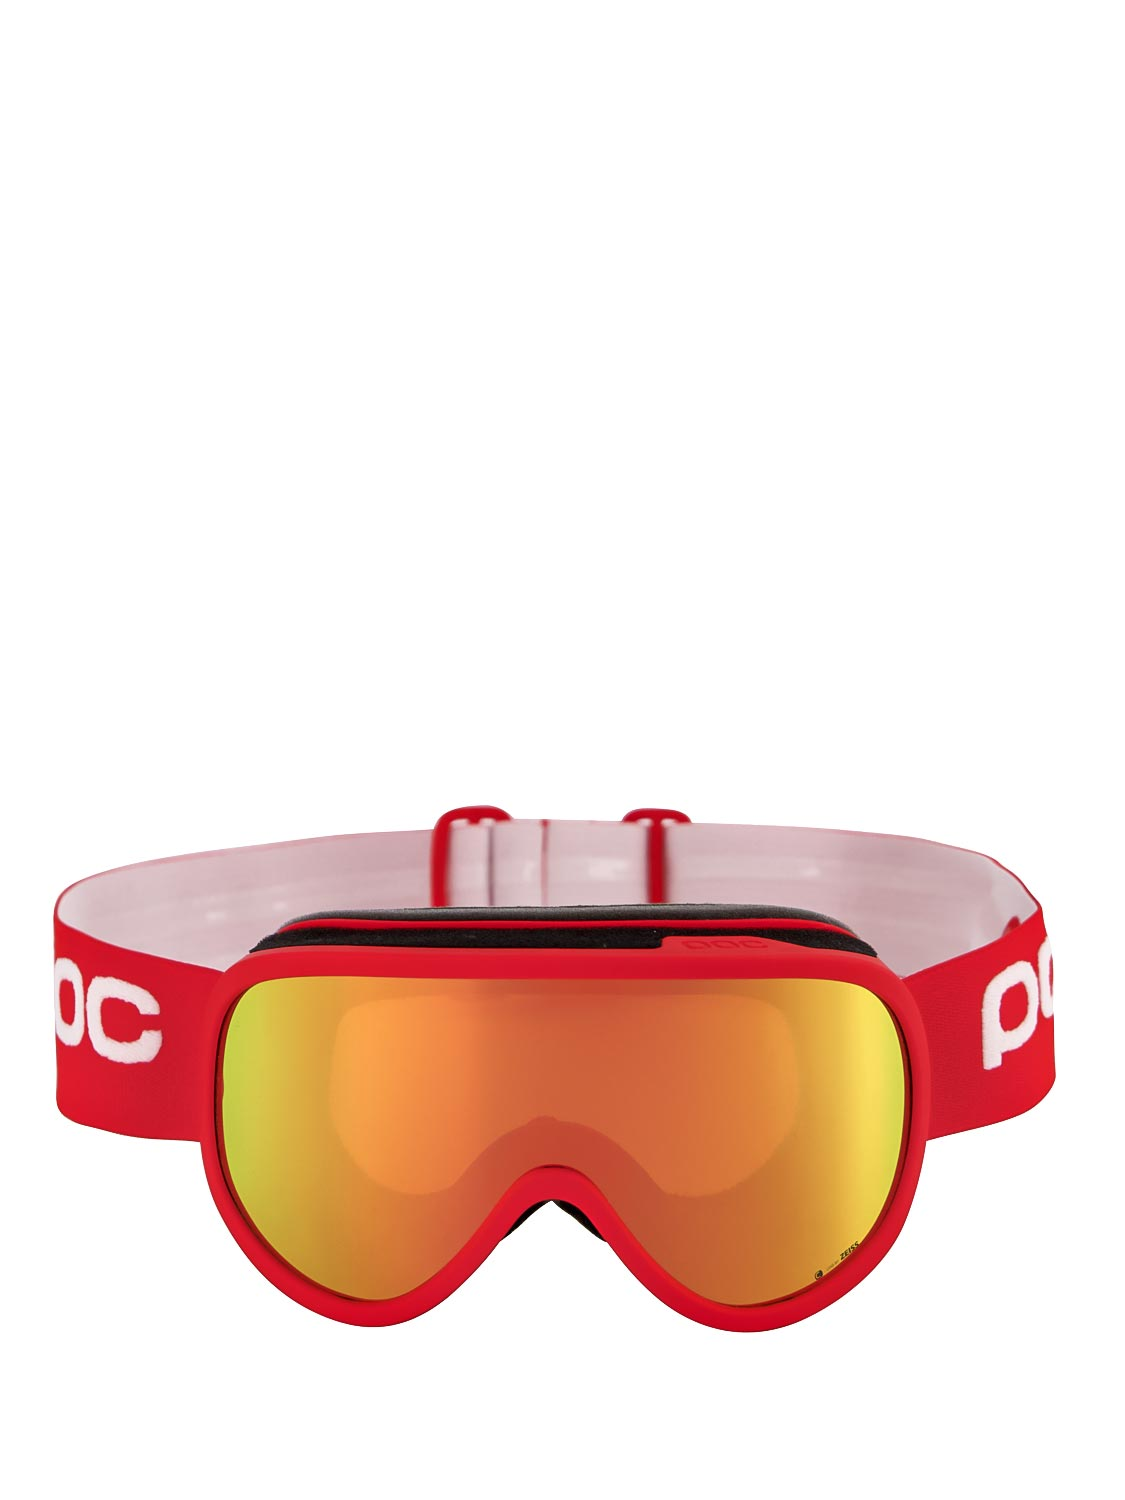 Poc Kids Ski Goggles Retina Clarity For For Boys And For Girls In Red